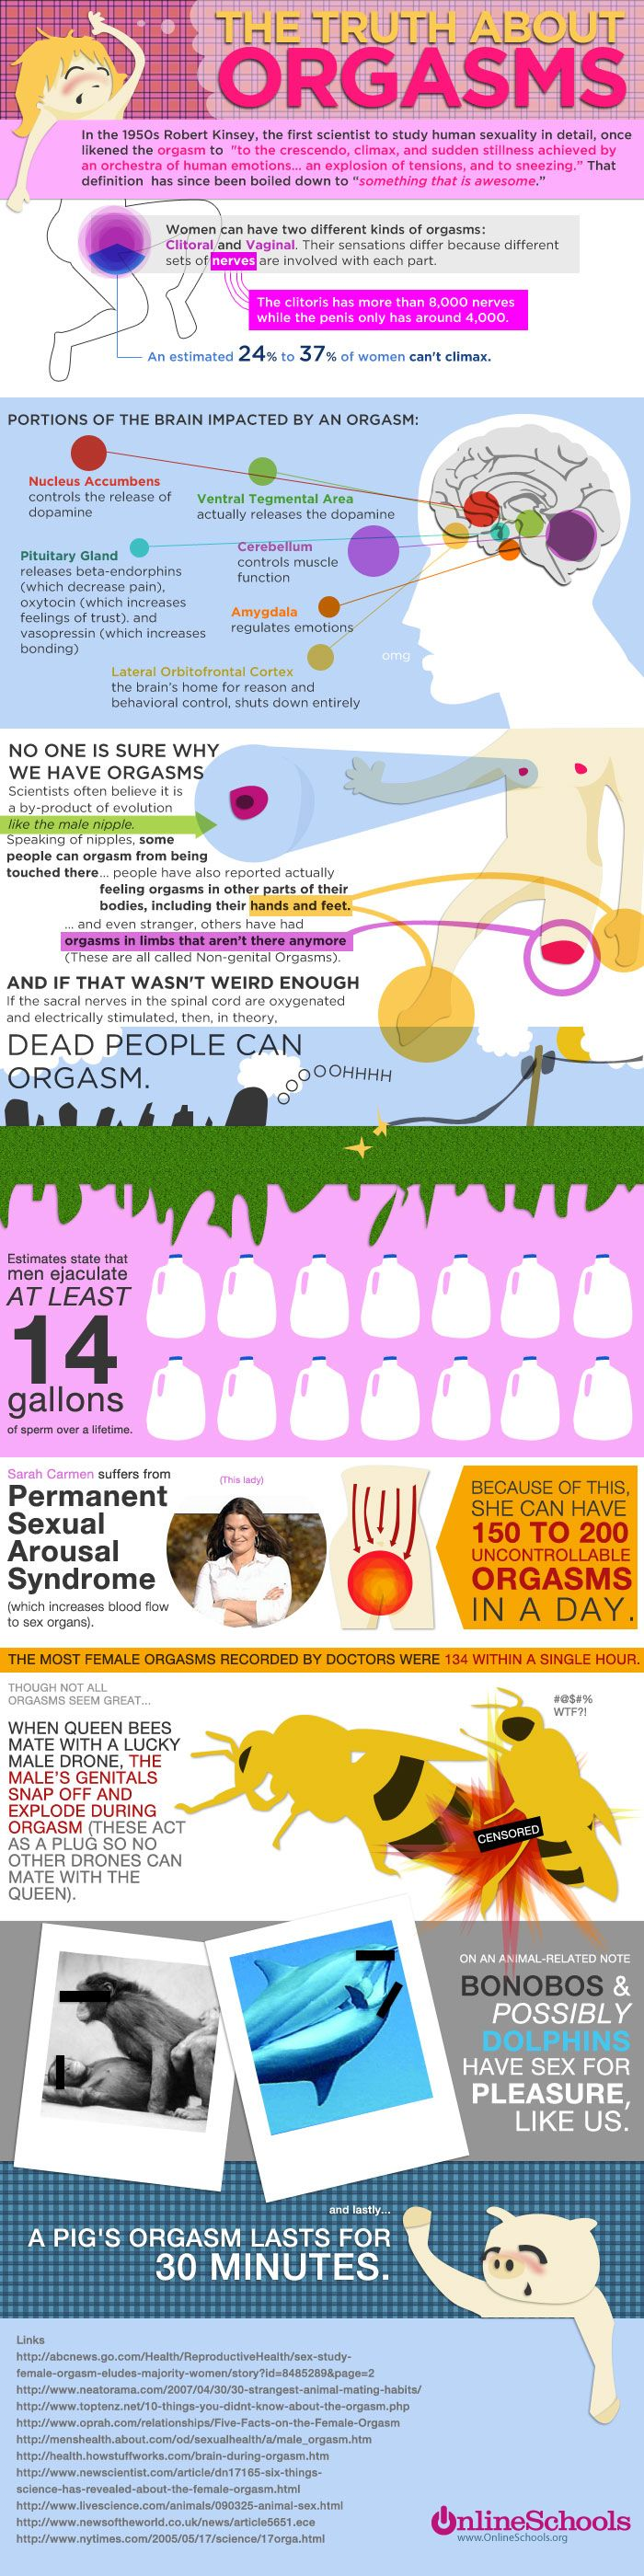 INFOGRAPHIC: The Truth About Orgasms